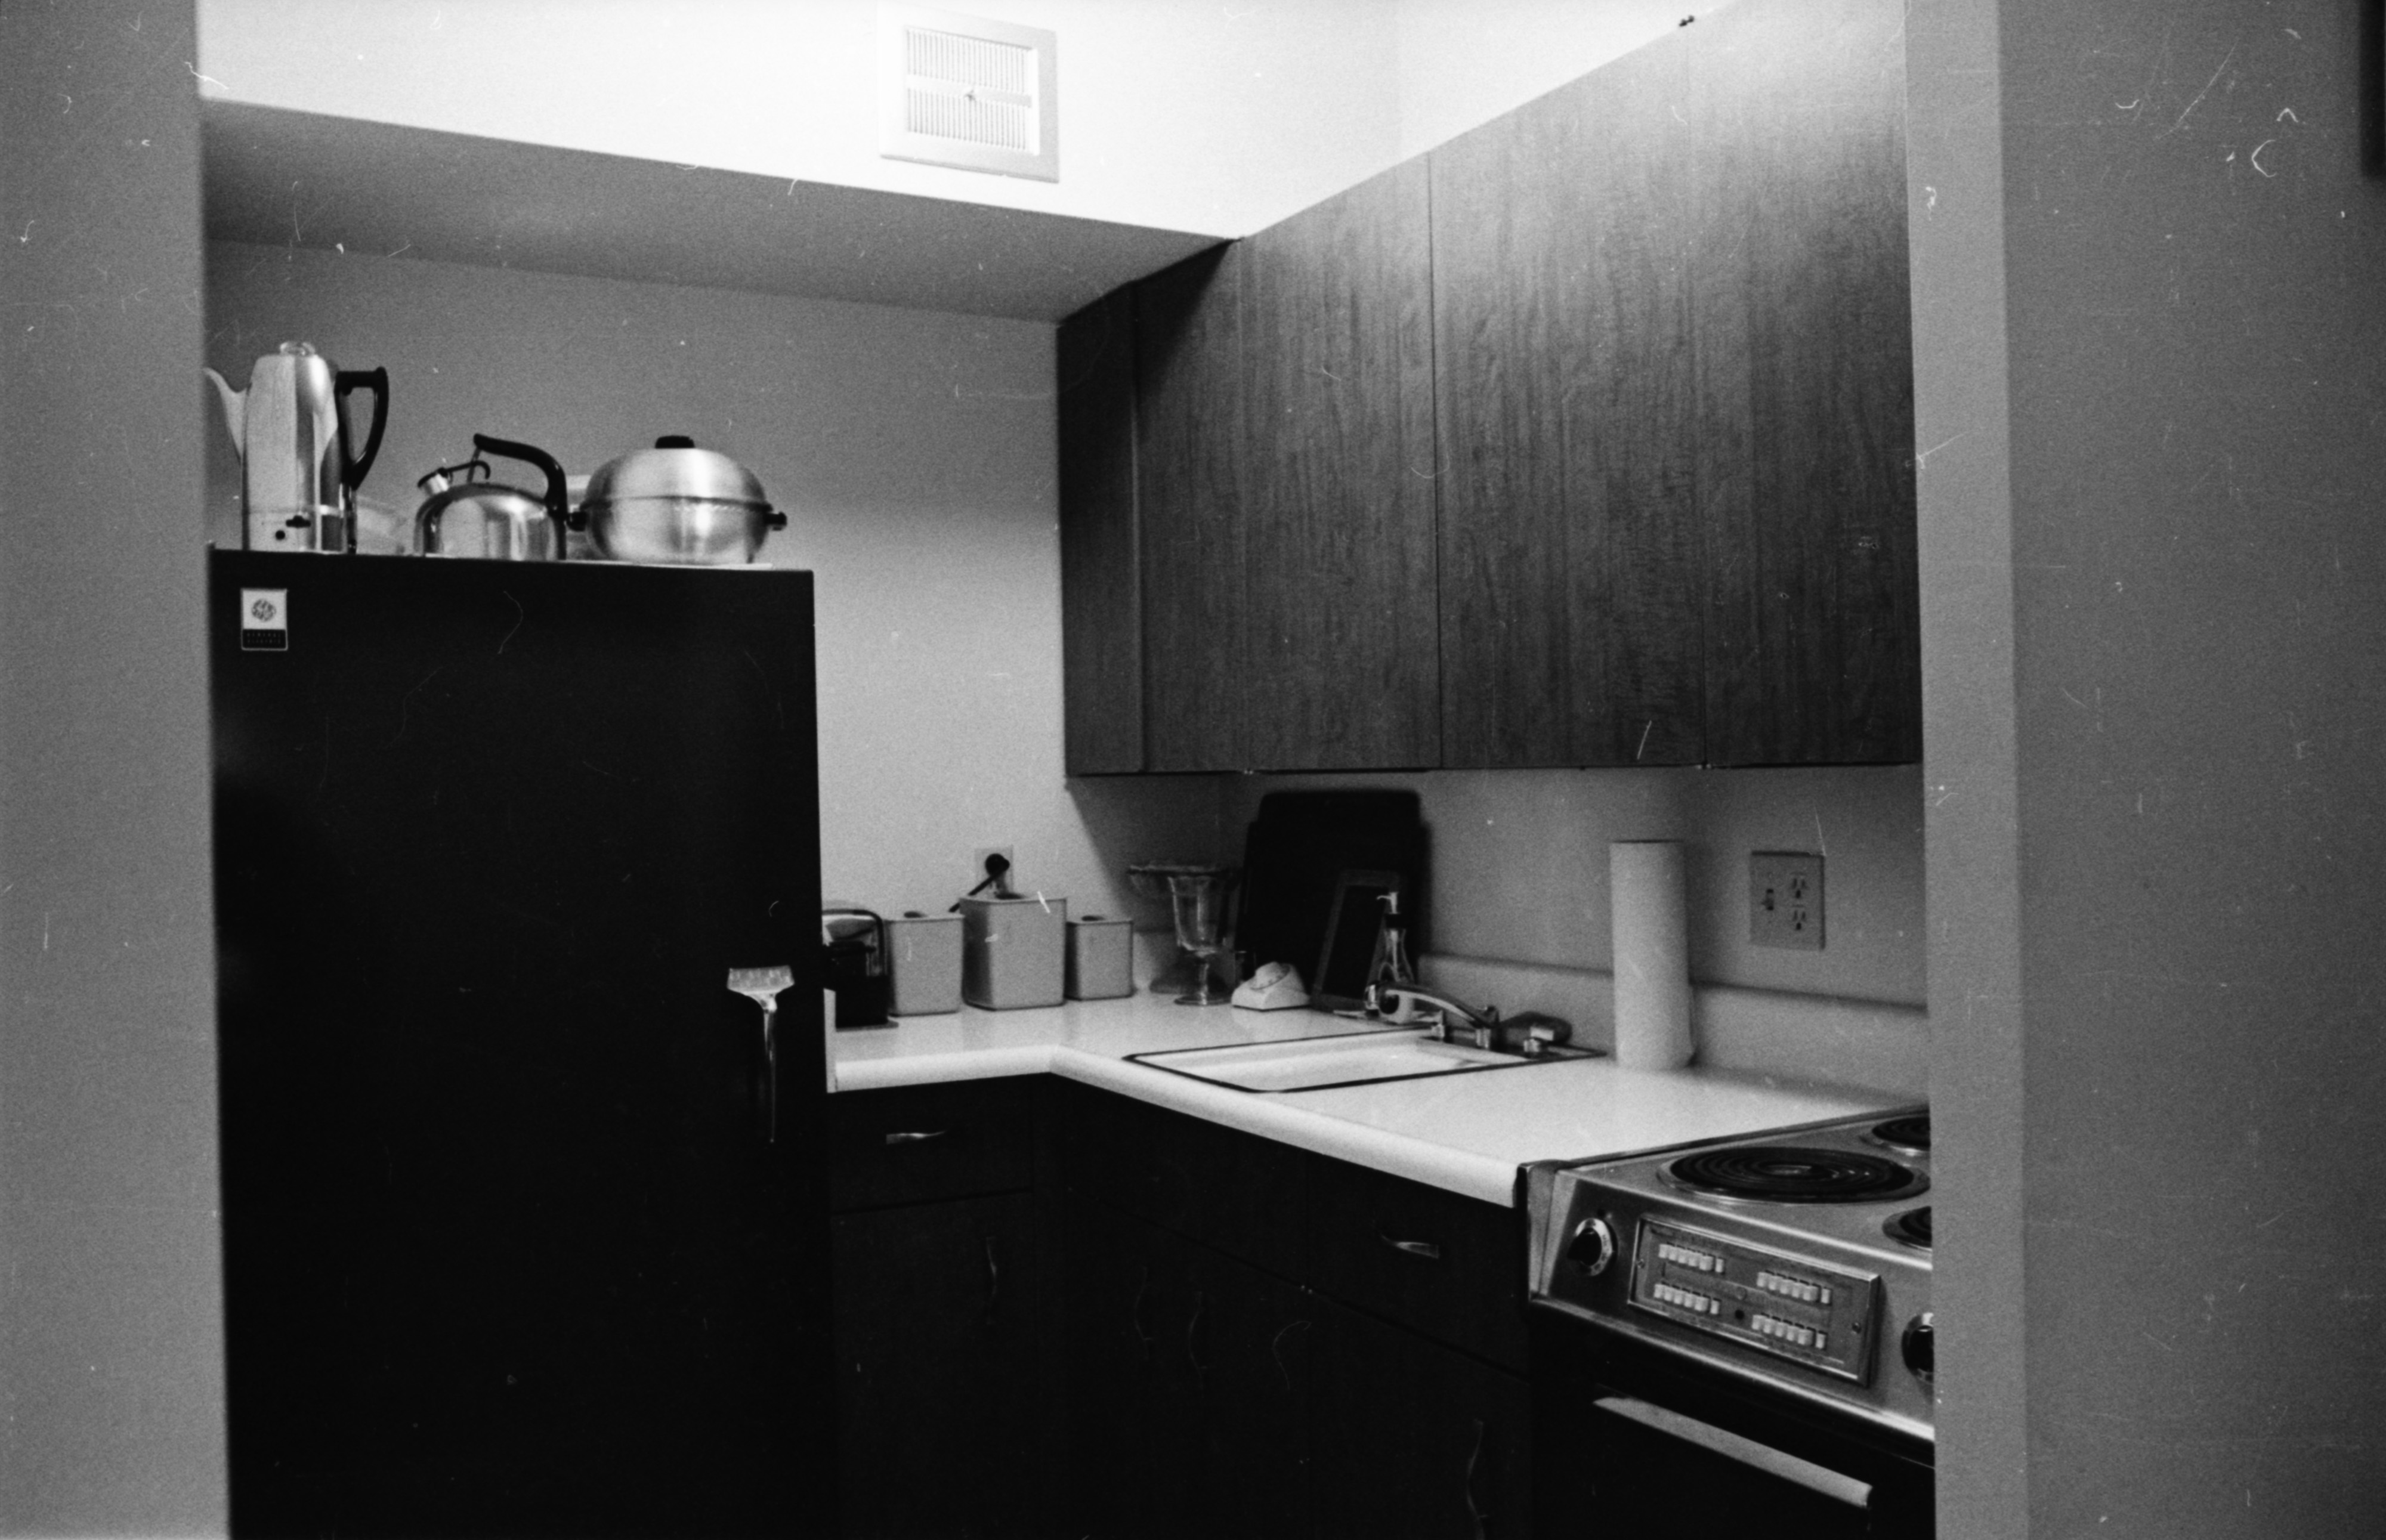 Kitchen Area, Lurie Terrace apartment, October 1964 image